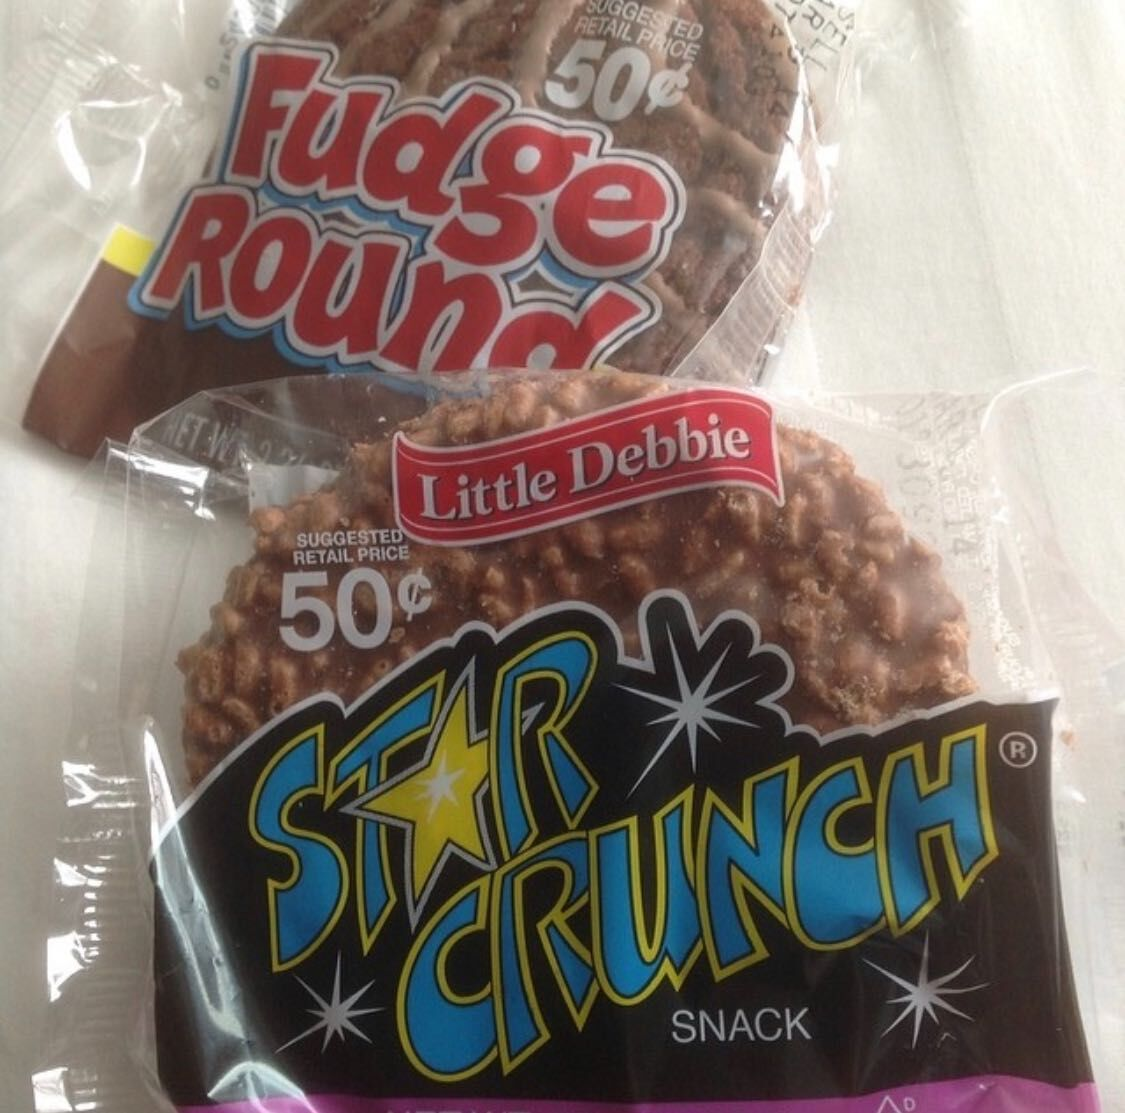 Star Crunch from Little Debbie is an underrated treat